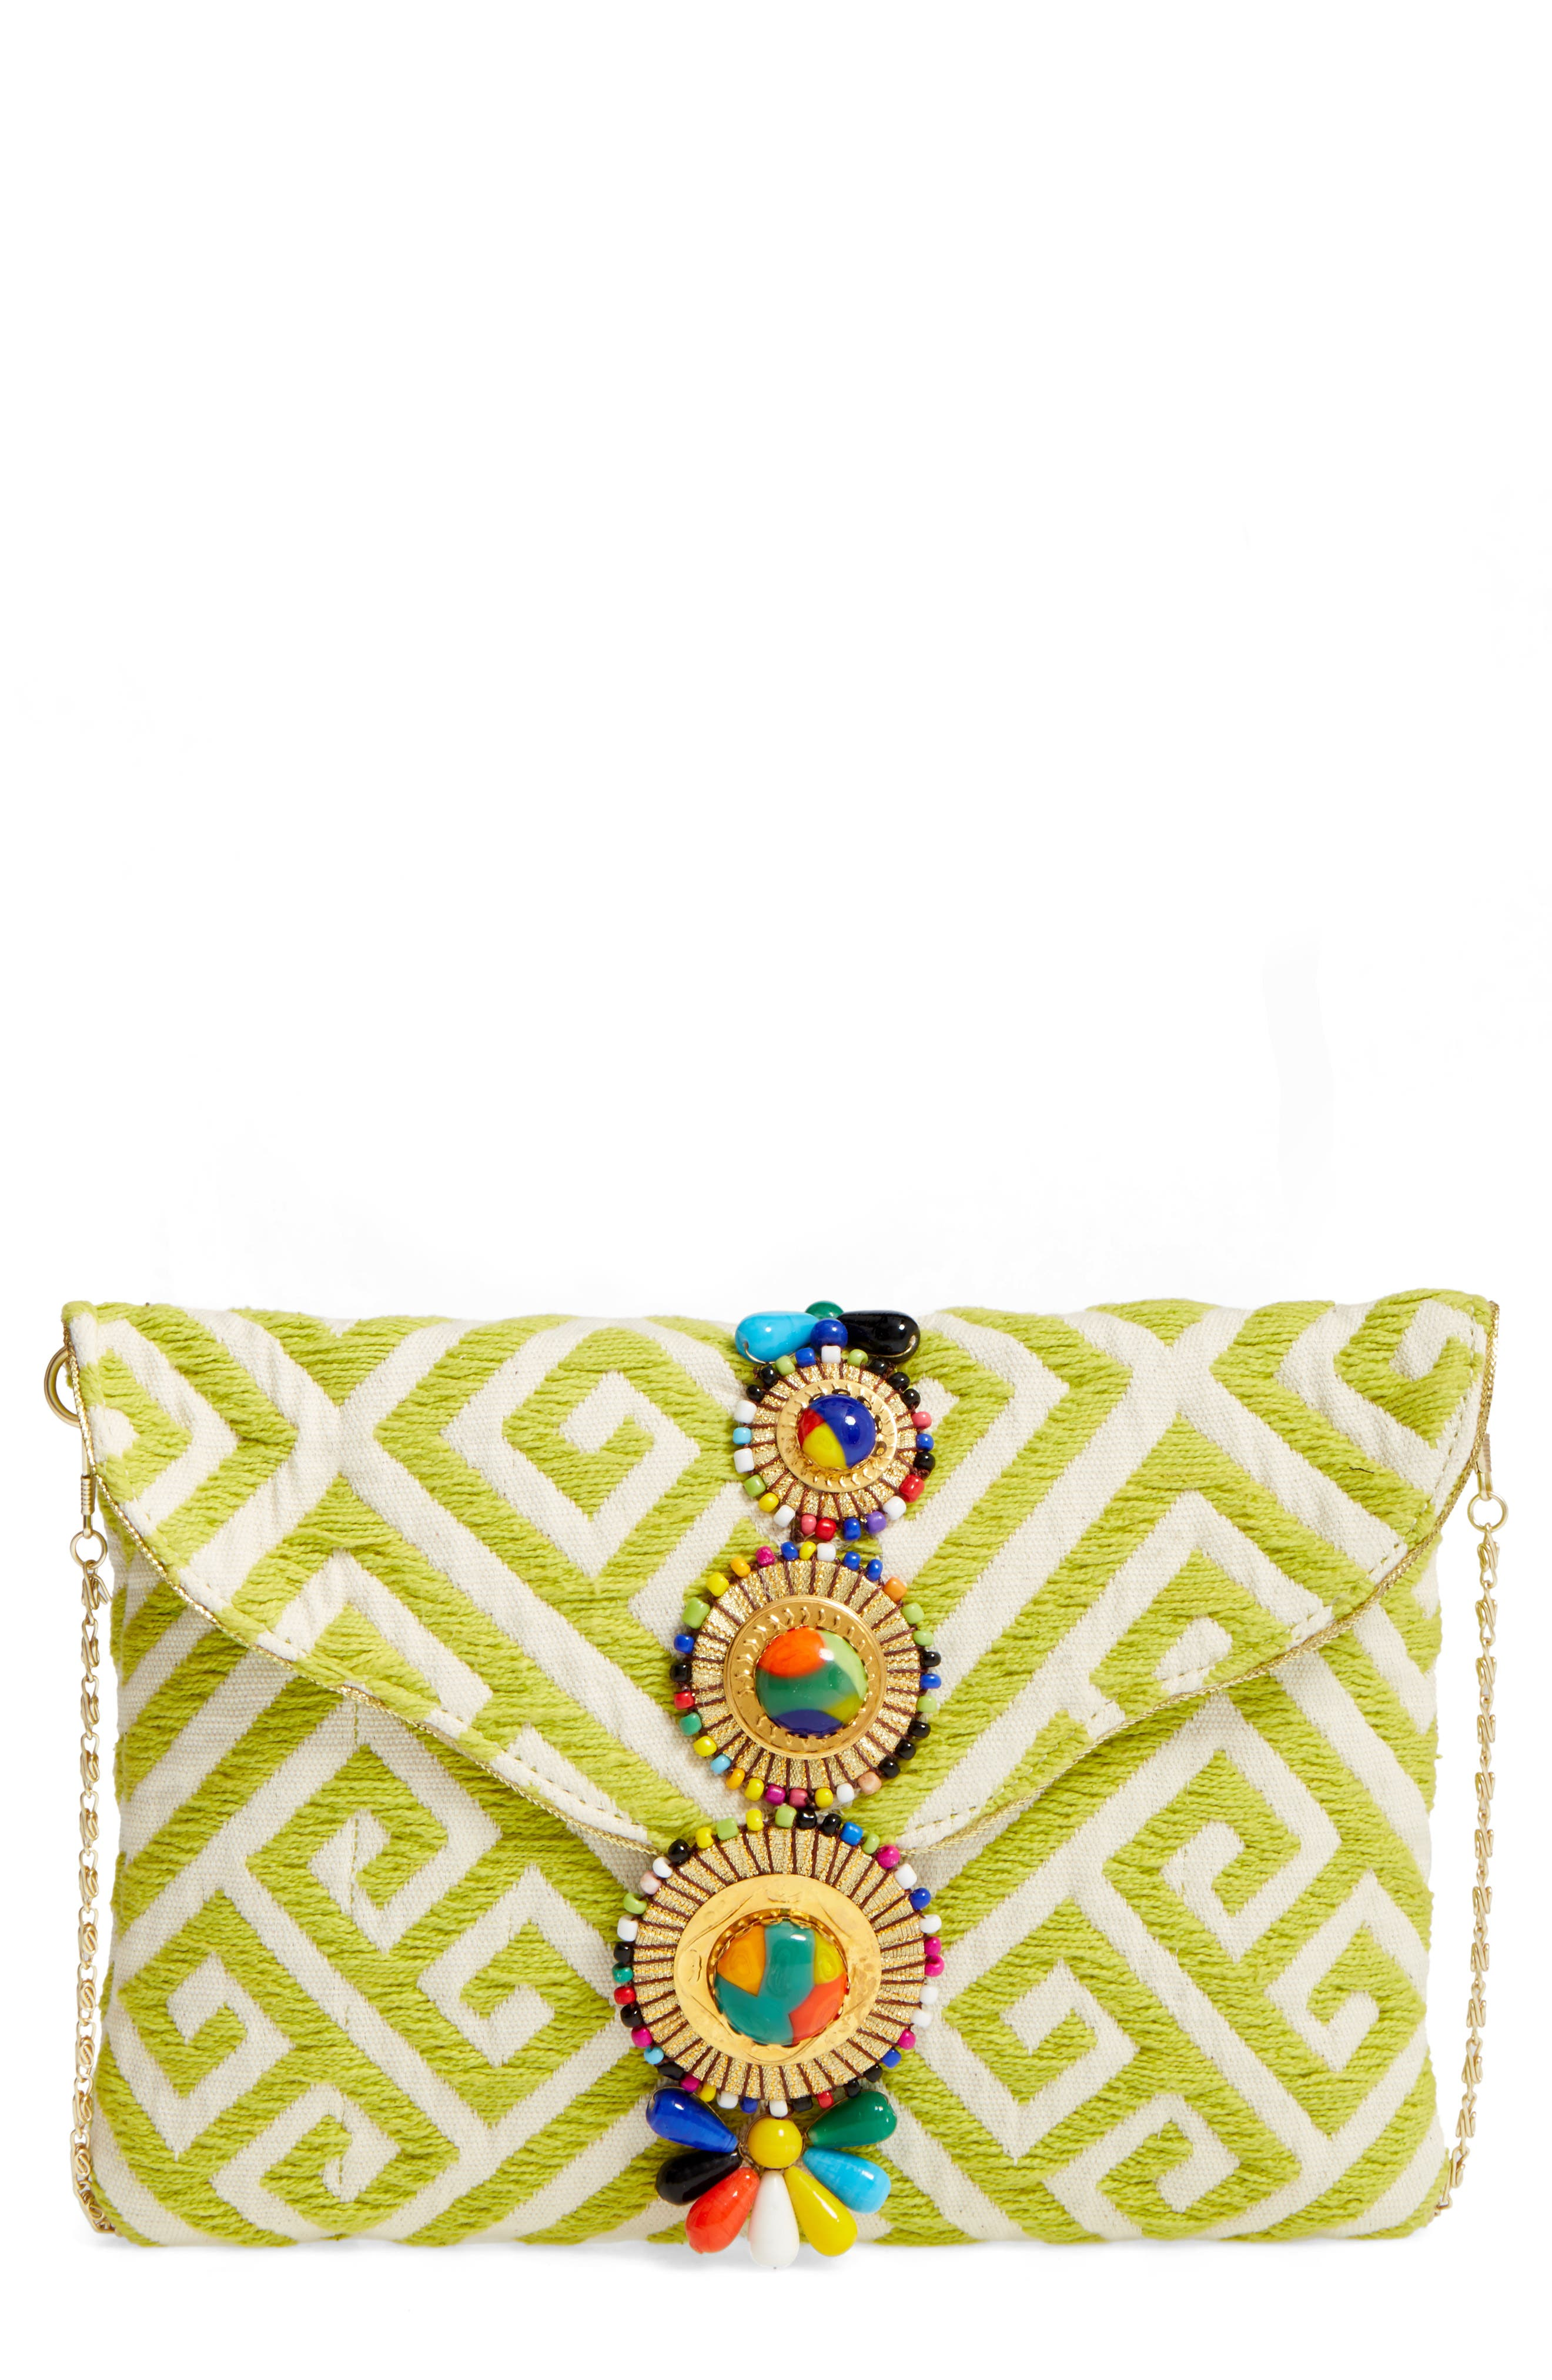 Main Image - Steven by Steve Madden Beaded & Embroidered Clutch